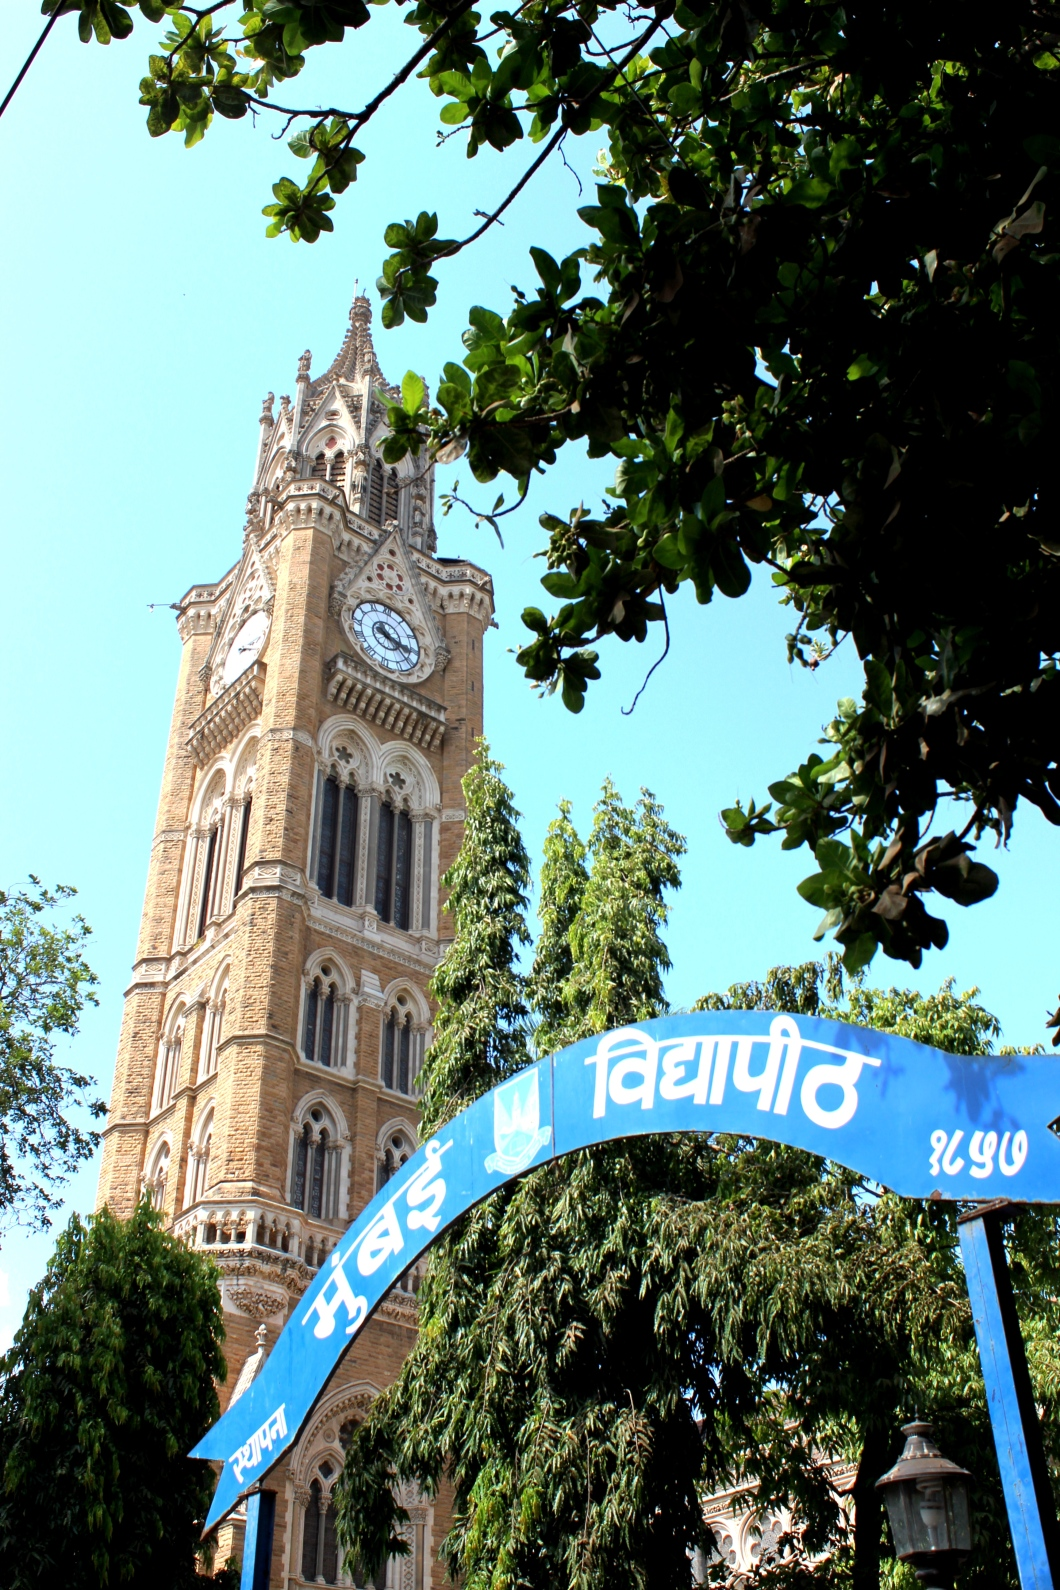 The Rajabai Clock Tower located in the confines of the Fort campus of the University of Mumbai - Photograph for purchase at Shutterstock